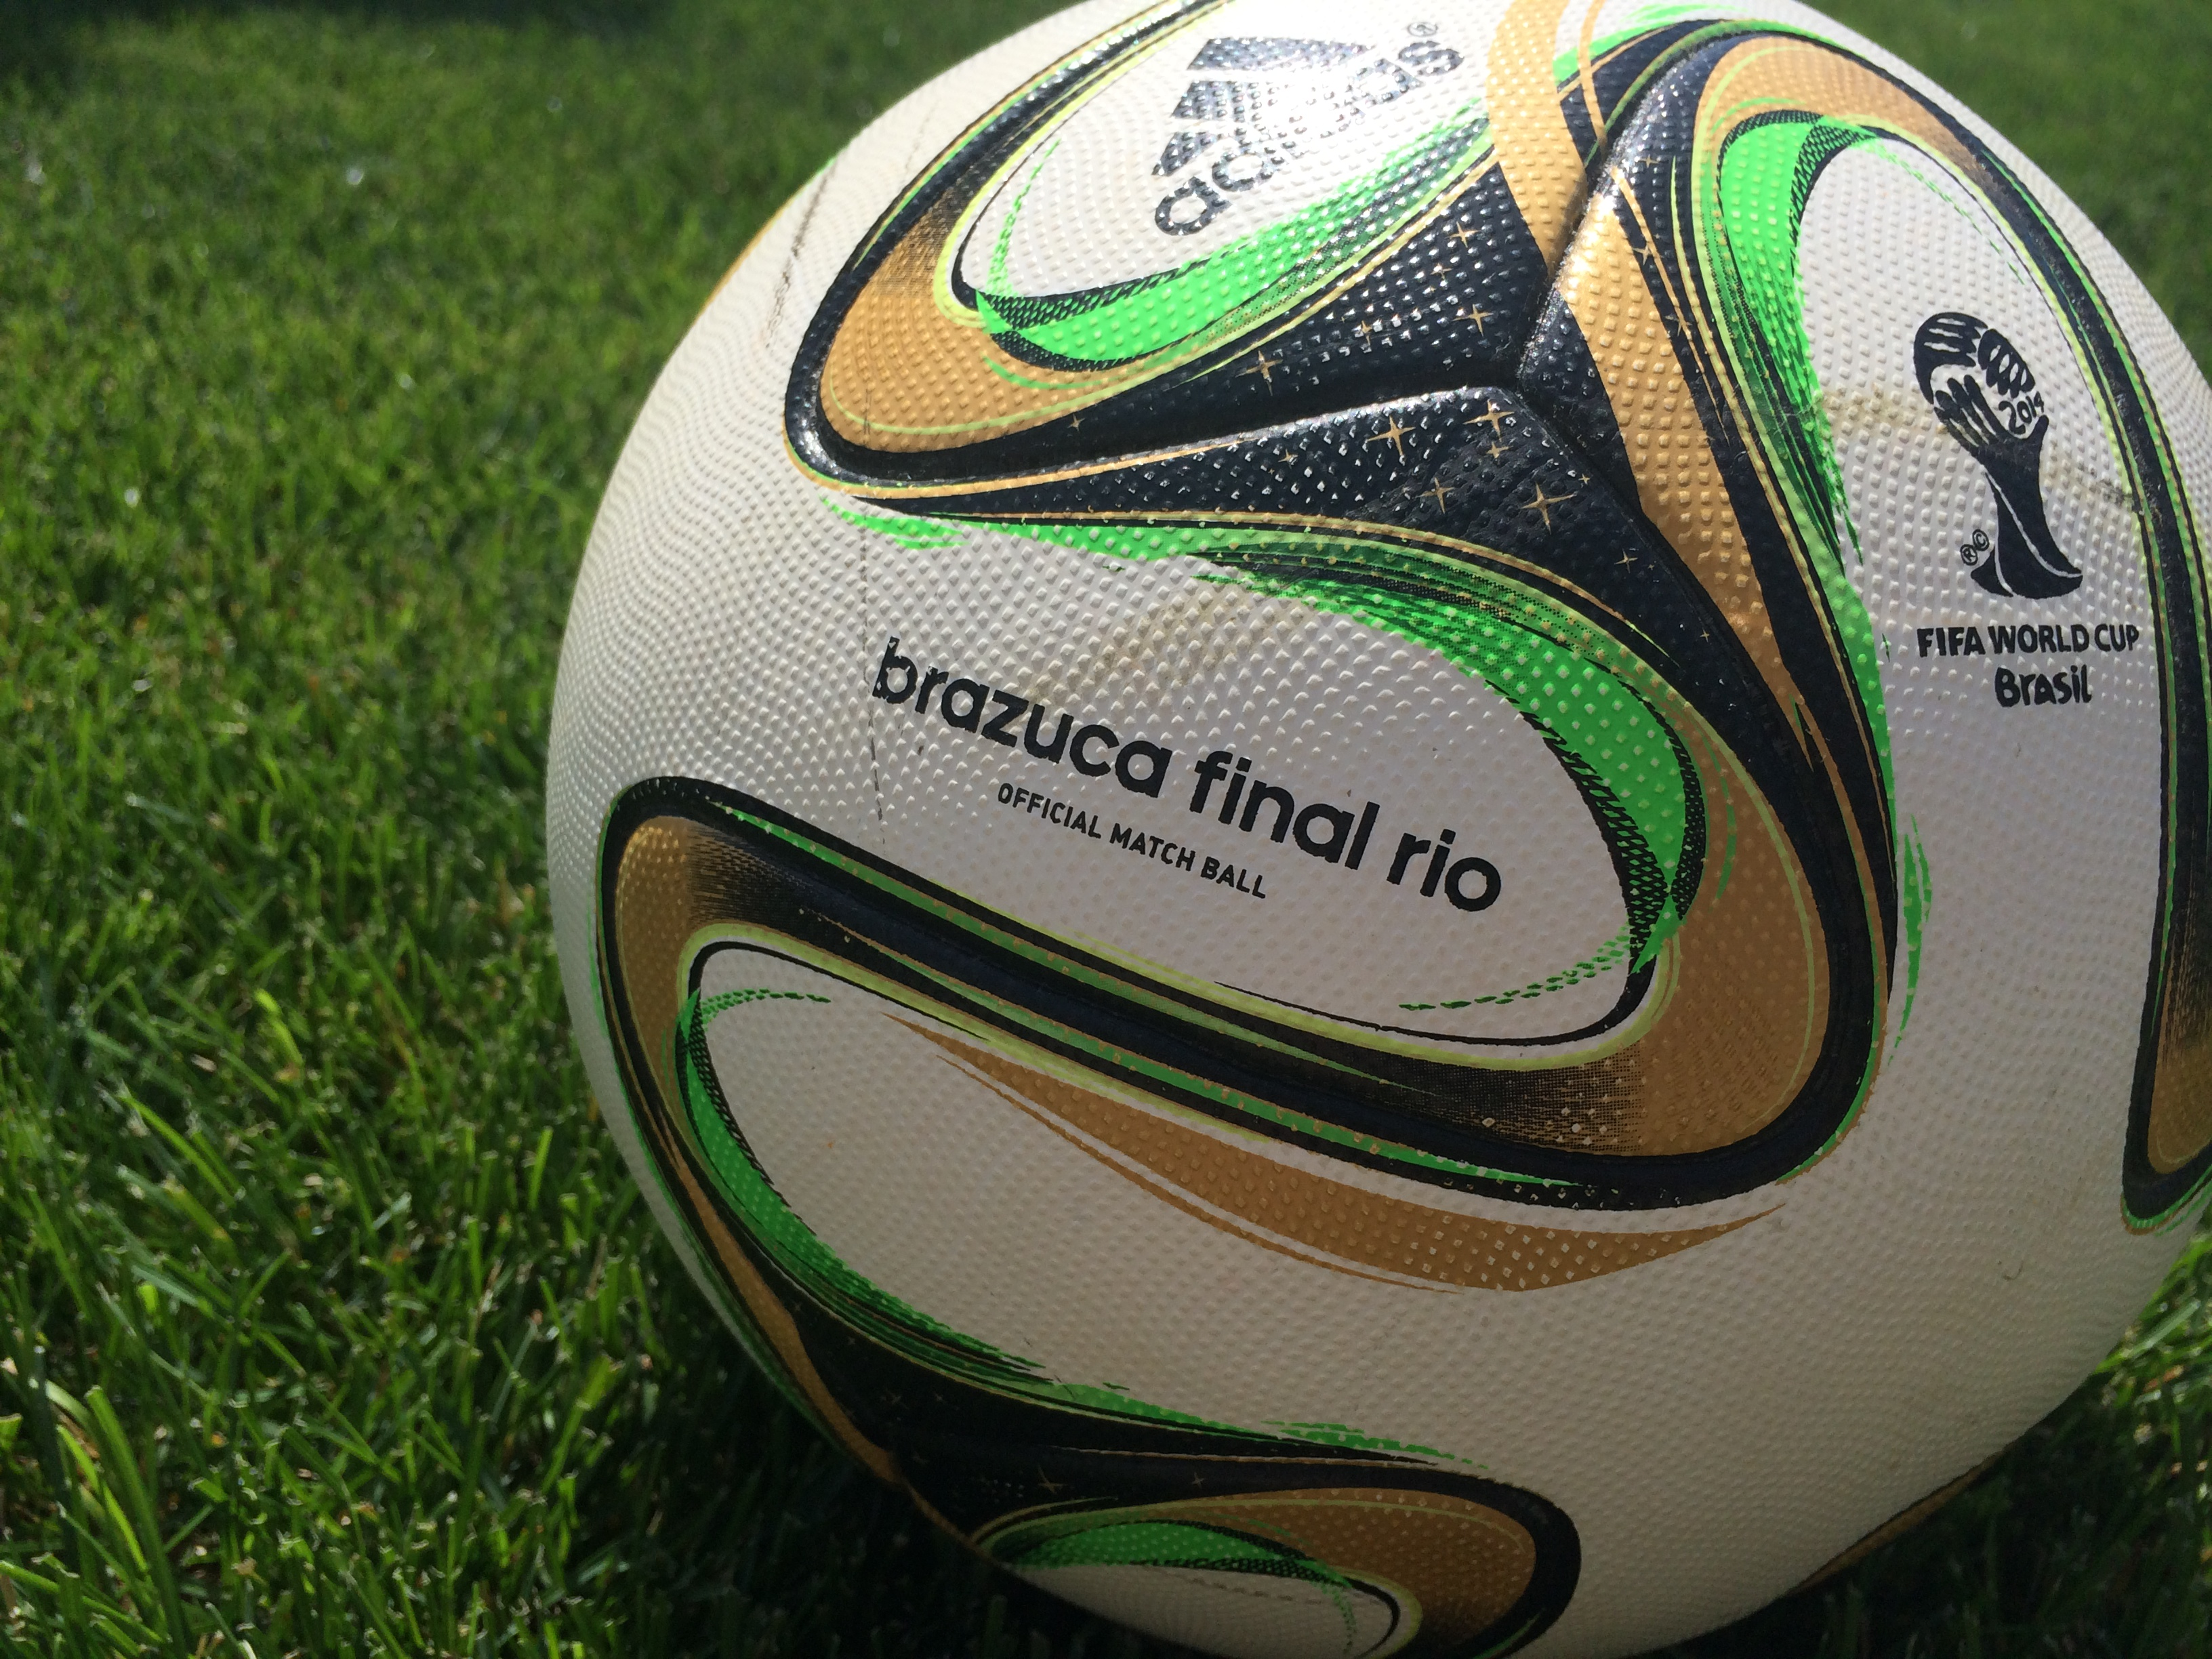 The green and gold coloured Brazuca soccer ball was used in the 2014 World Cup Final as the match ball in Brazil. (Photo by Ricardo Veneza)